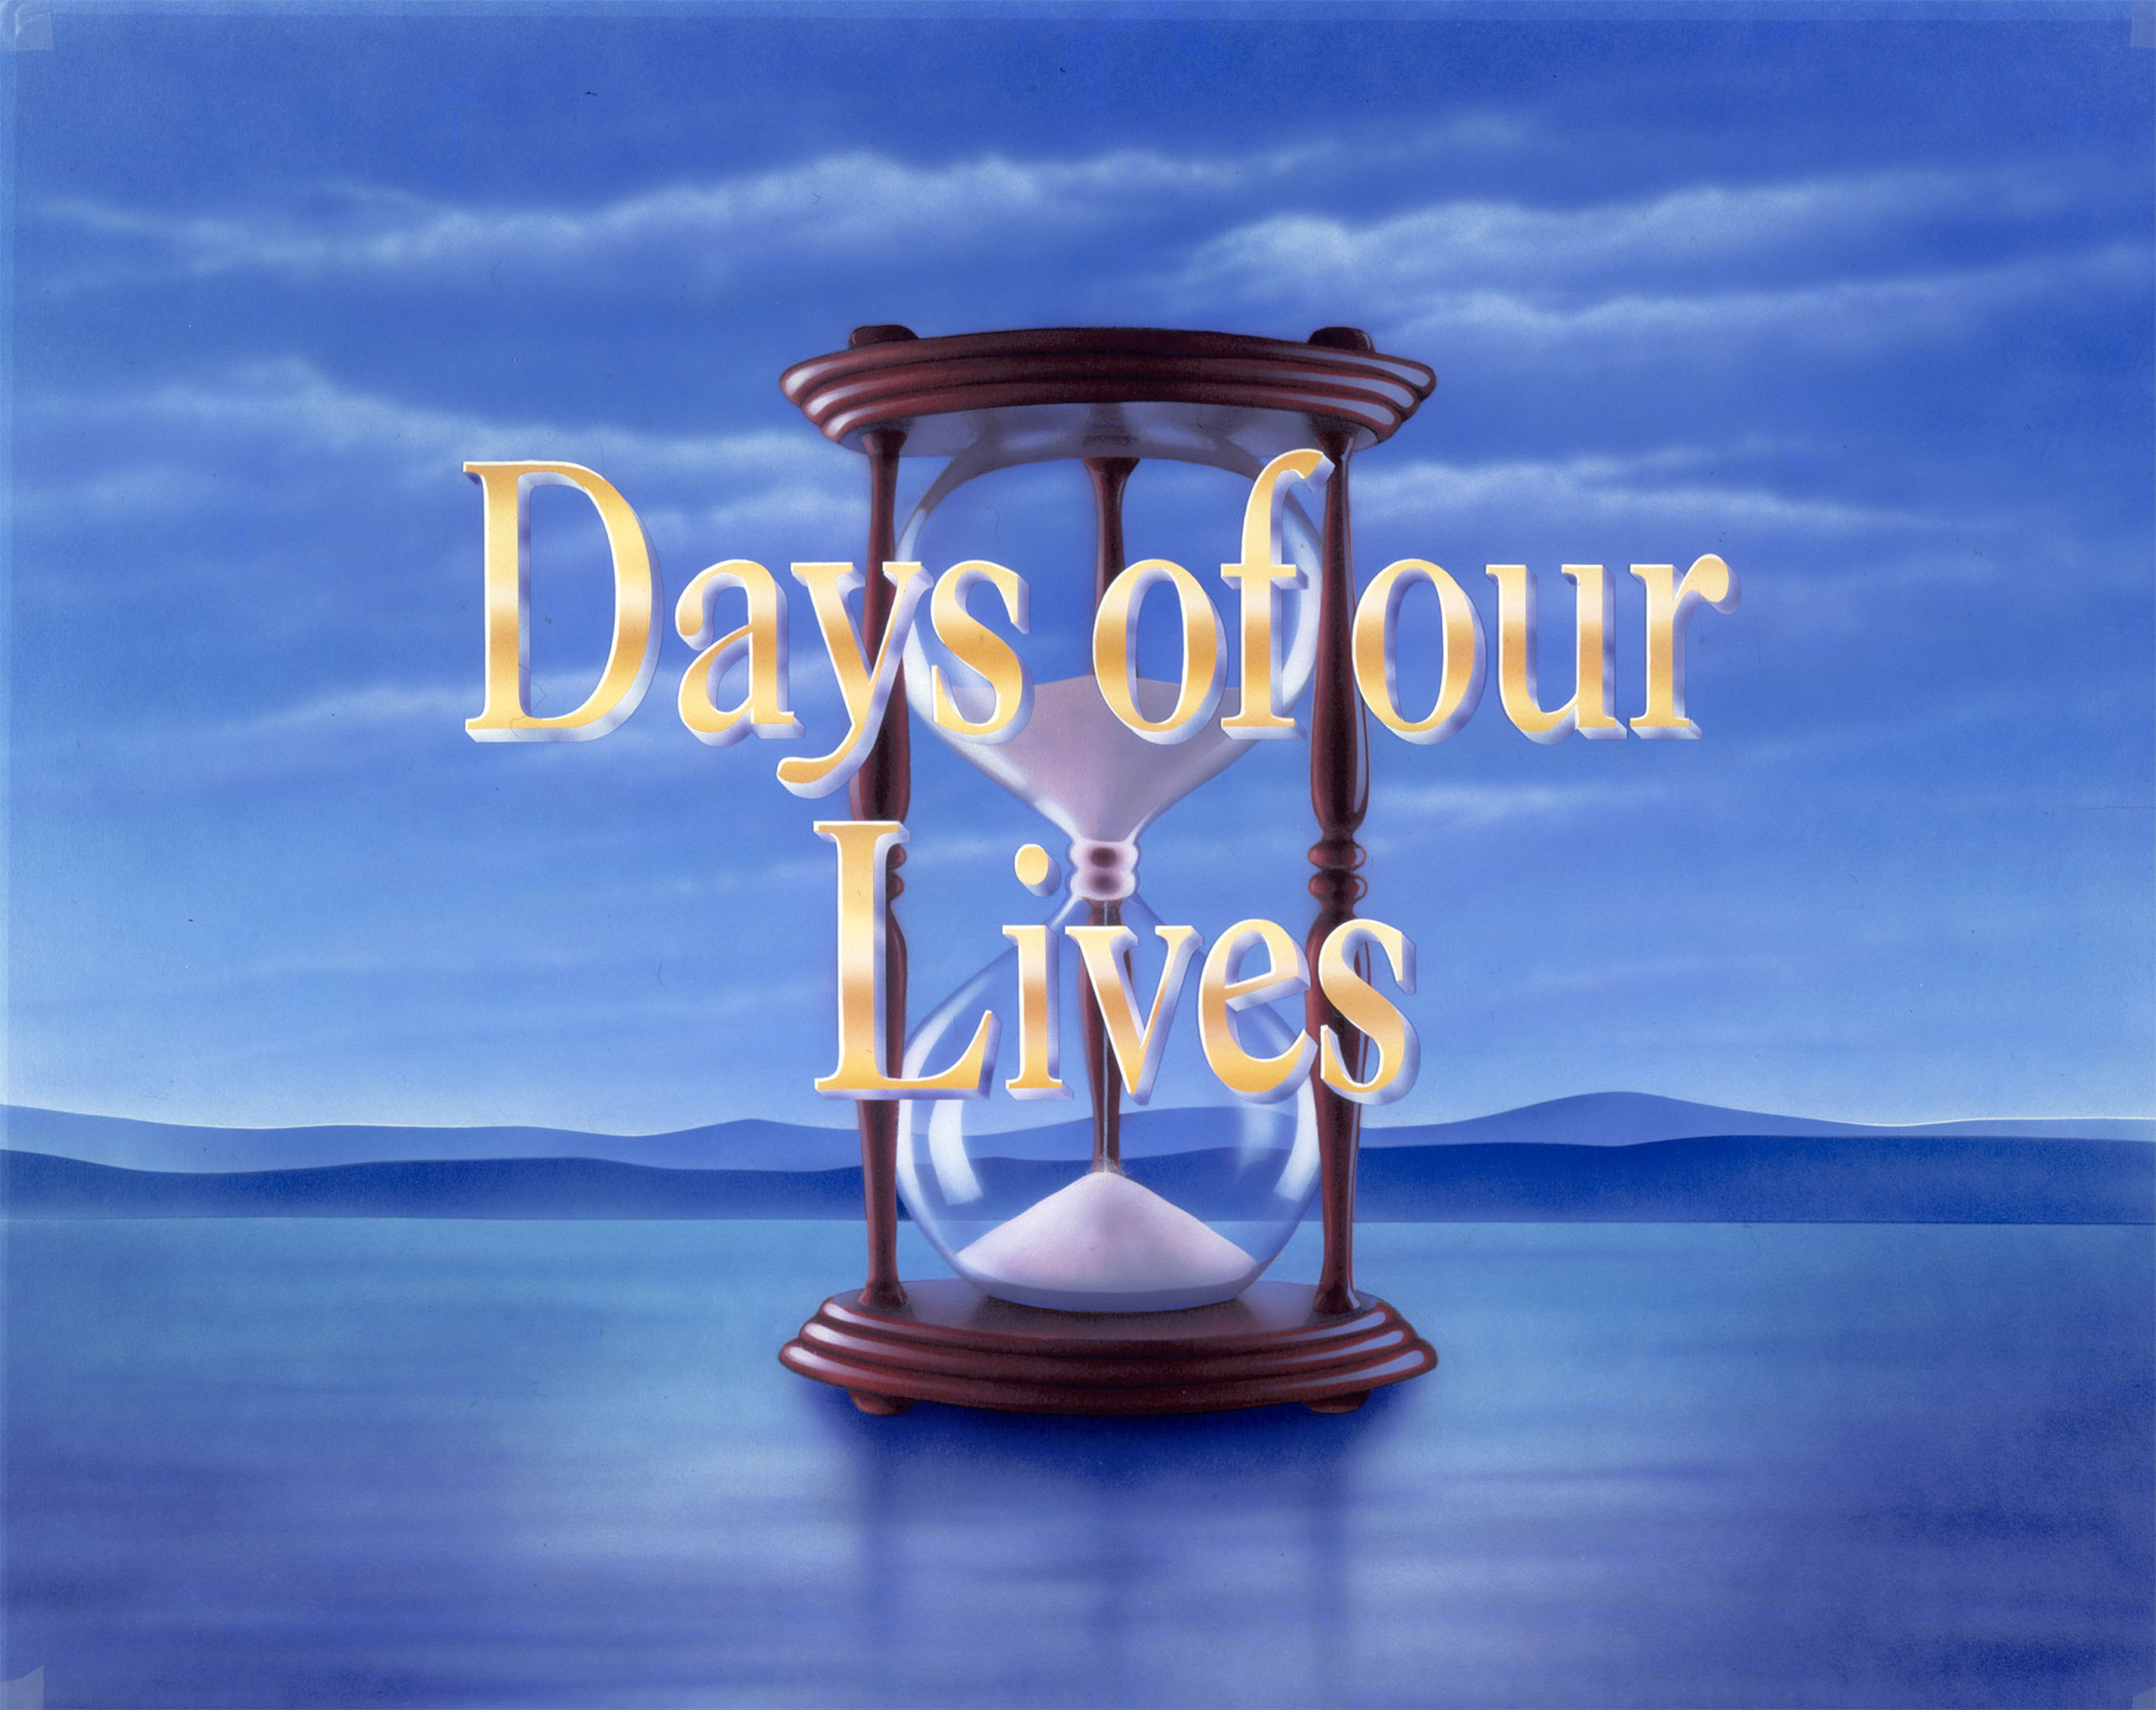 DAYS OF OUR LIVES Ties For #1 in The Women 18-34 Race for the Week Of Aug. 11-15